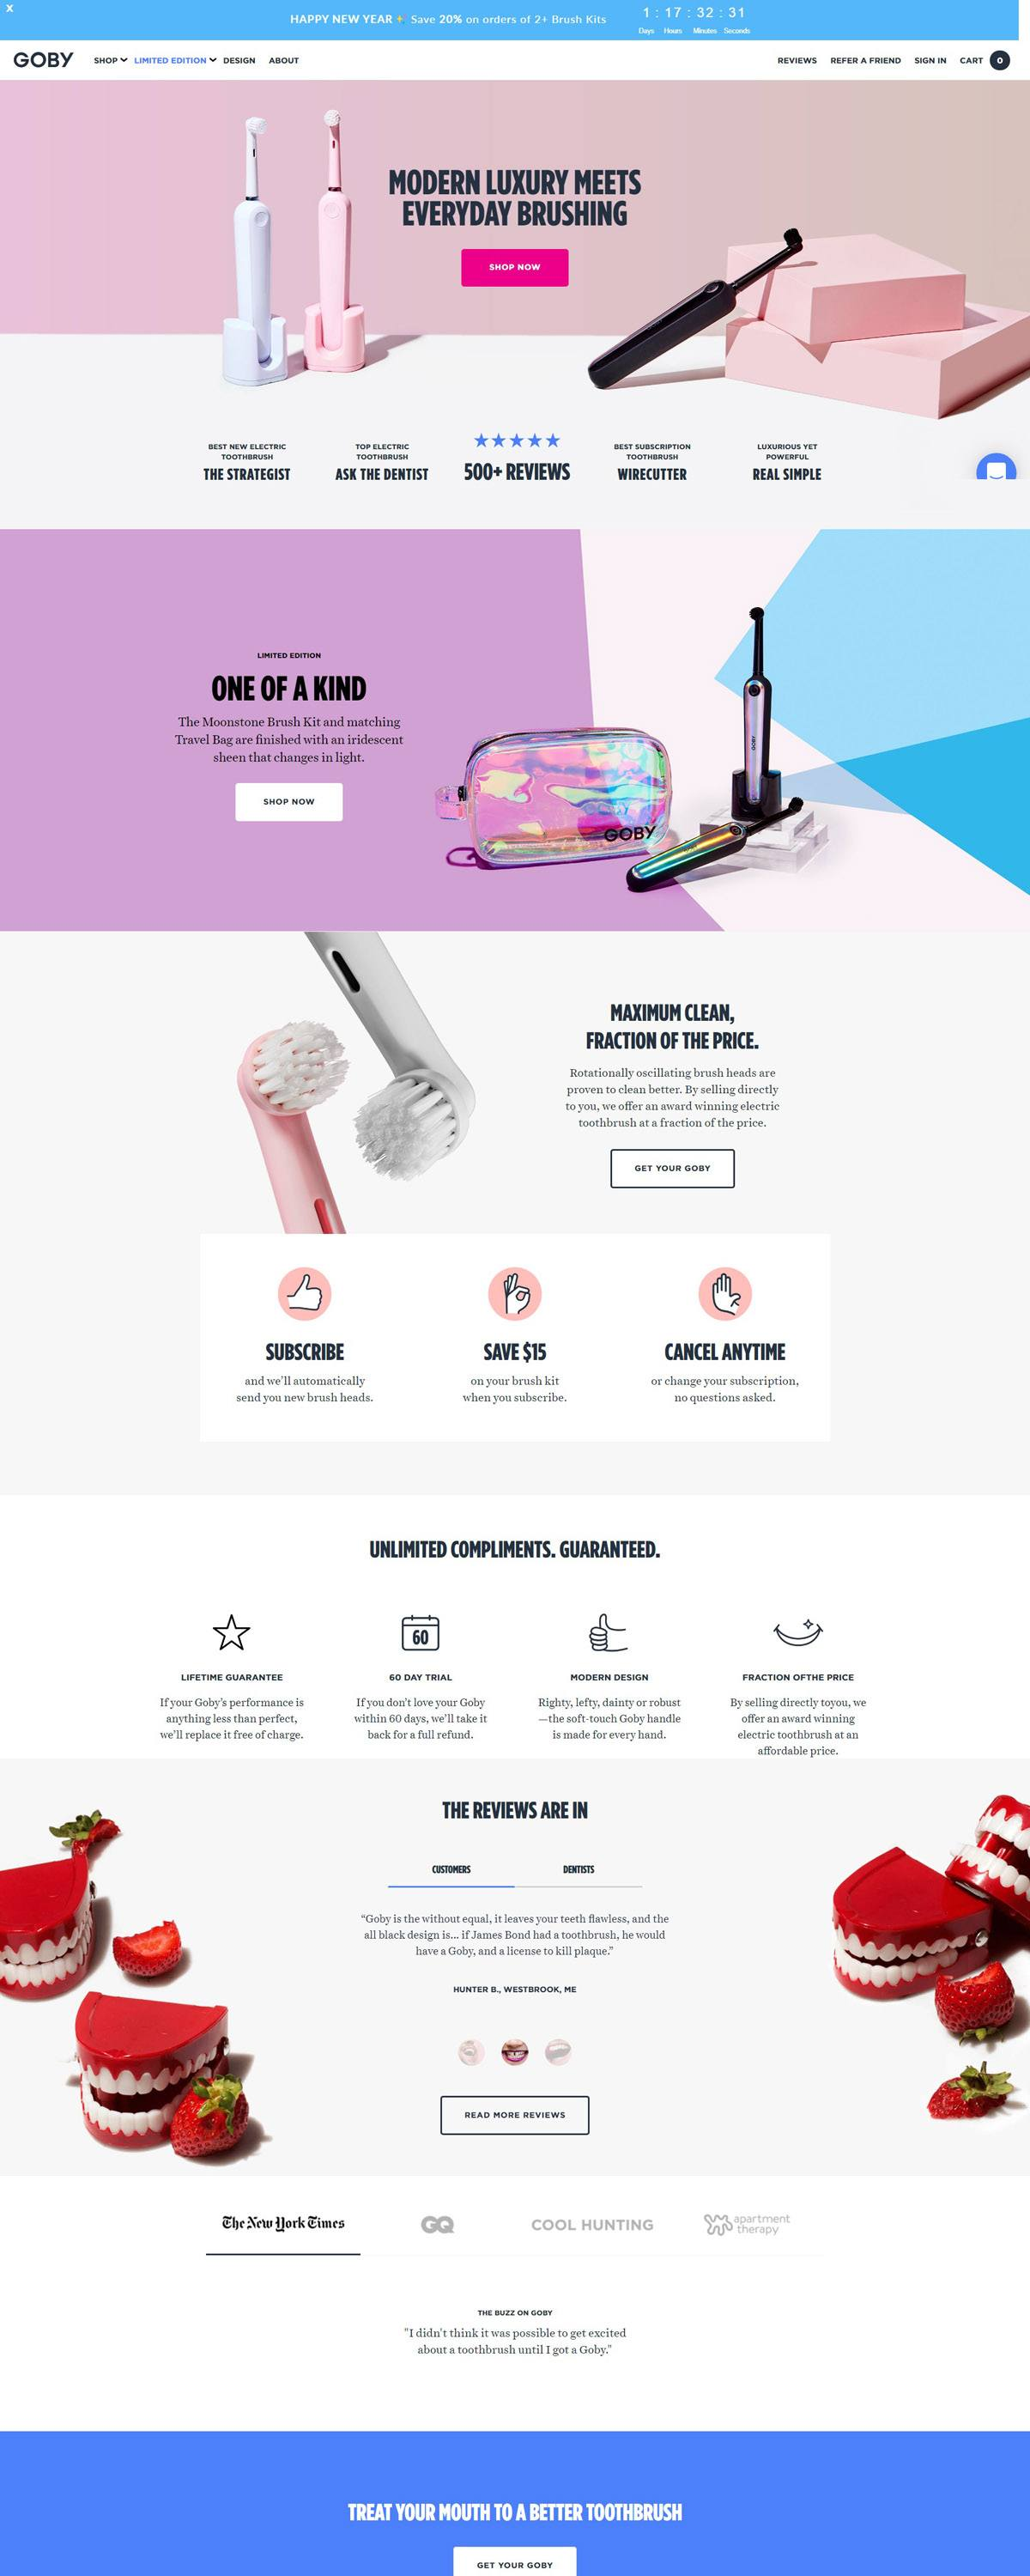 eCommerce website: GOBY